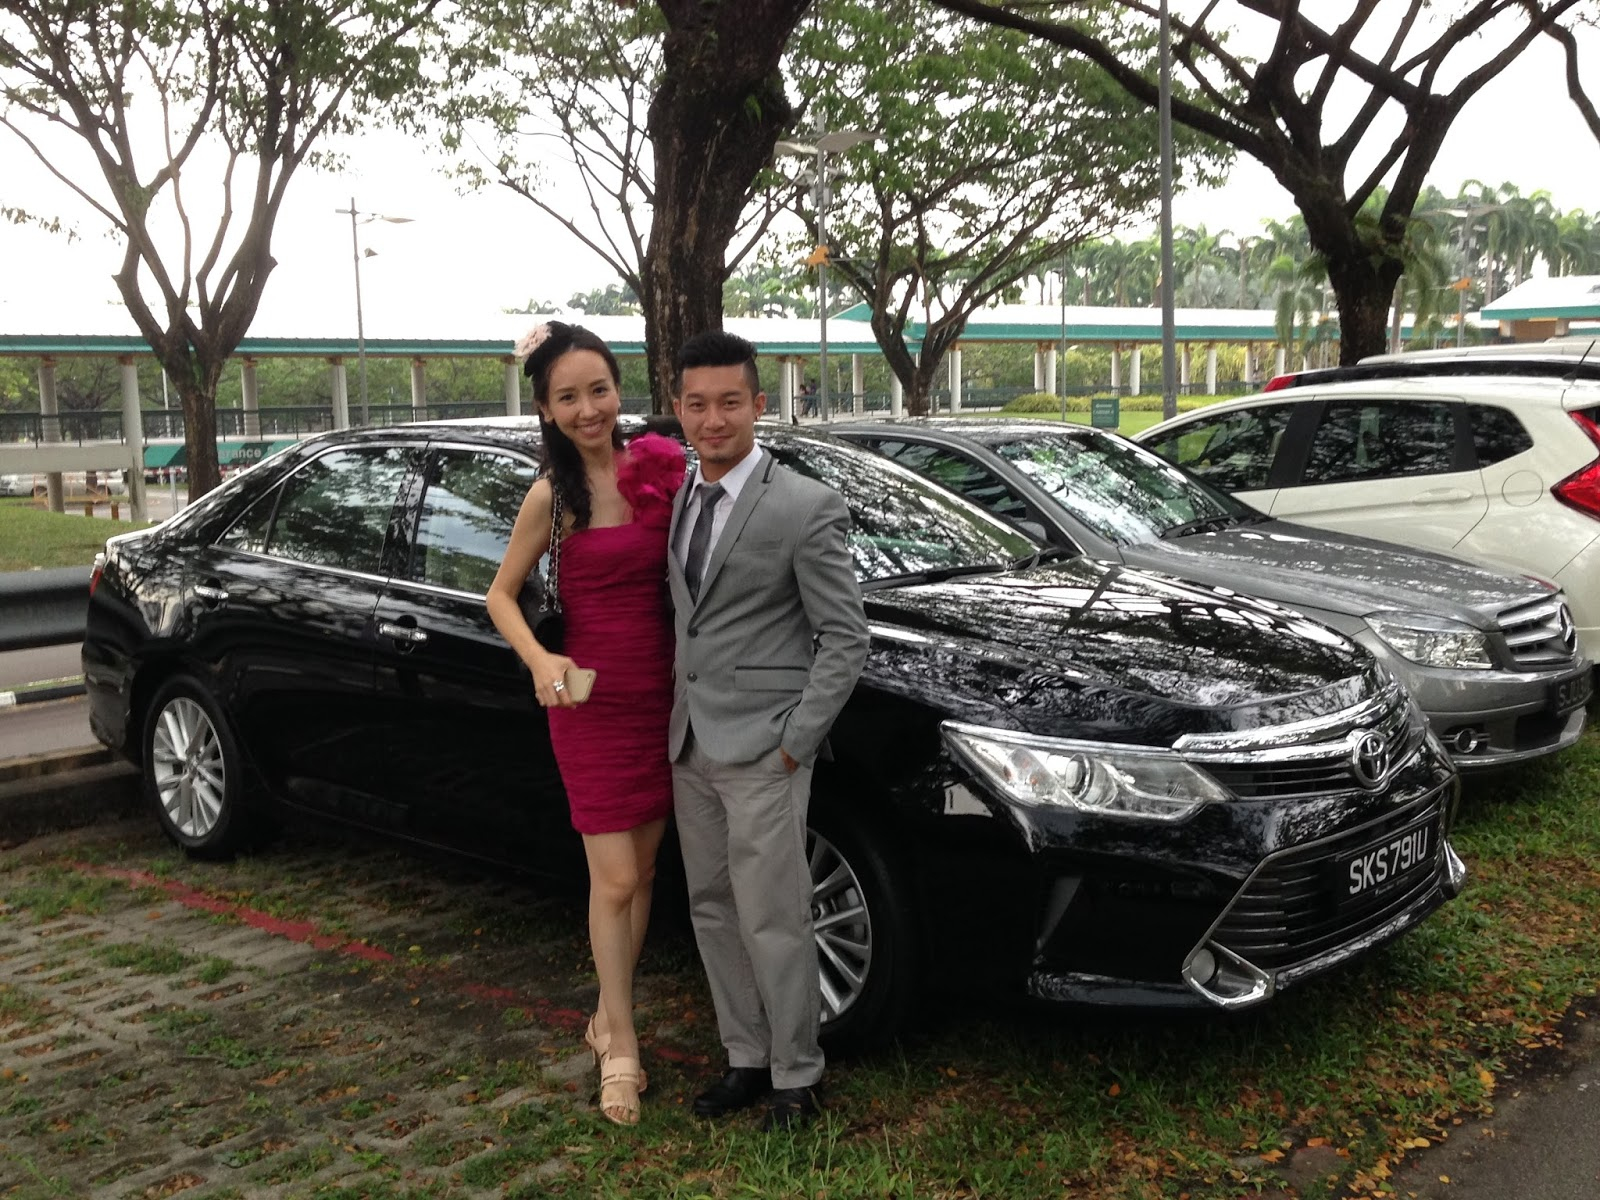 All New Camry Singapore Cicilan Kijang Innova Shaun Owyeong 2015 Toyota 2 5 A Class Leading Executive Sedan Emirates Derby The Racecourse Last Sunday With